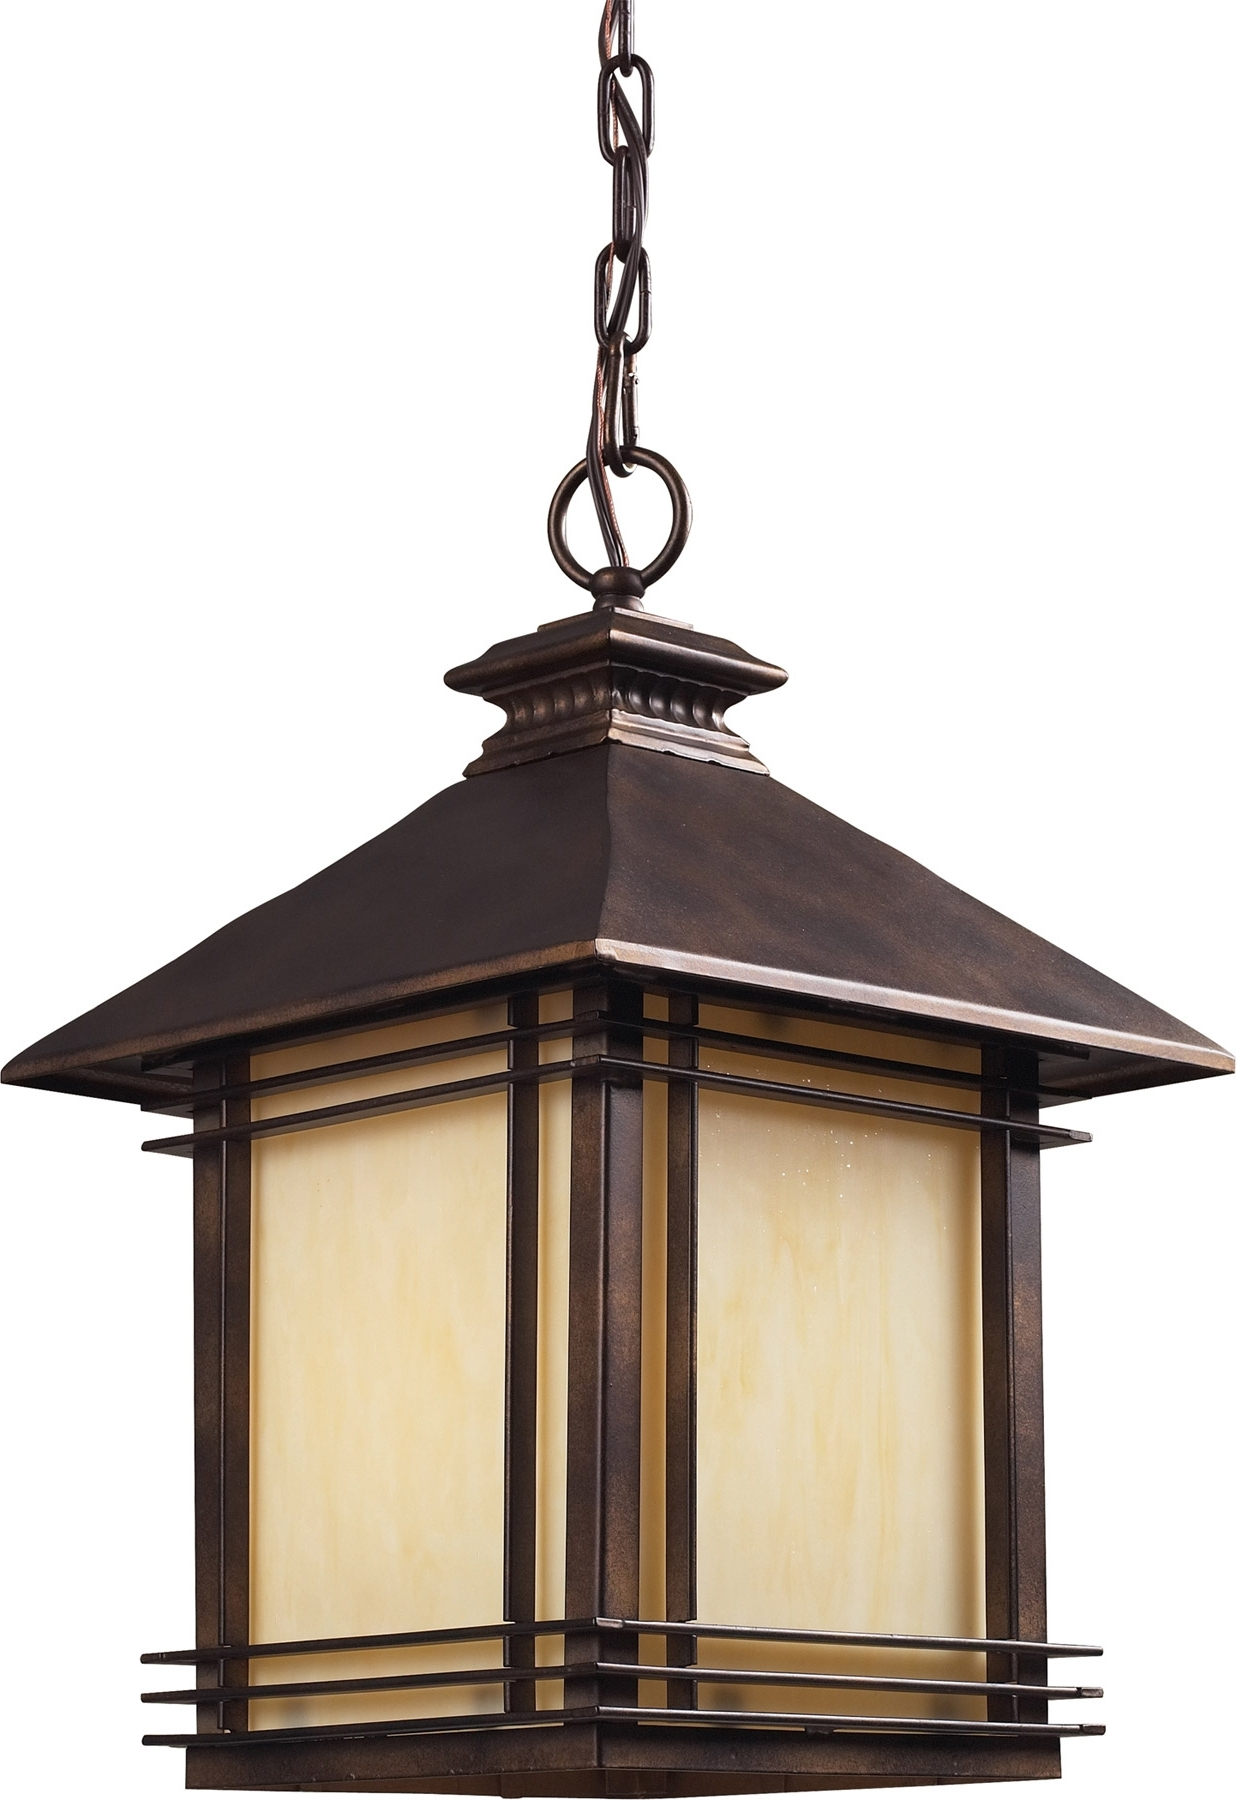 Hanging Outdoor Lights With Regard To Well Known Outdoor Hanging Lanterns – Nurani (View 9 of 20)